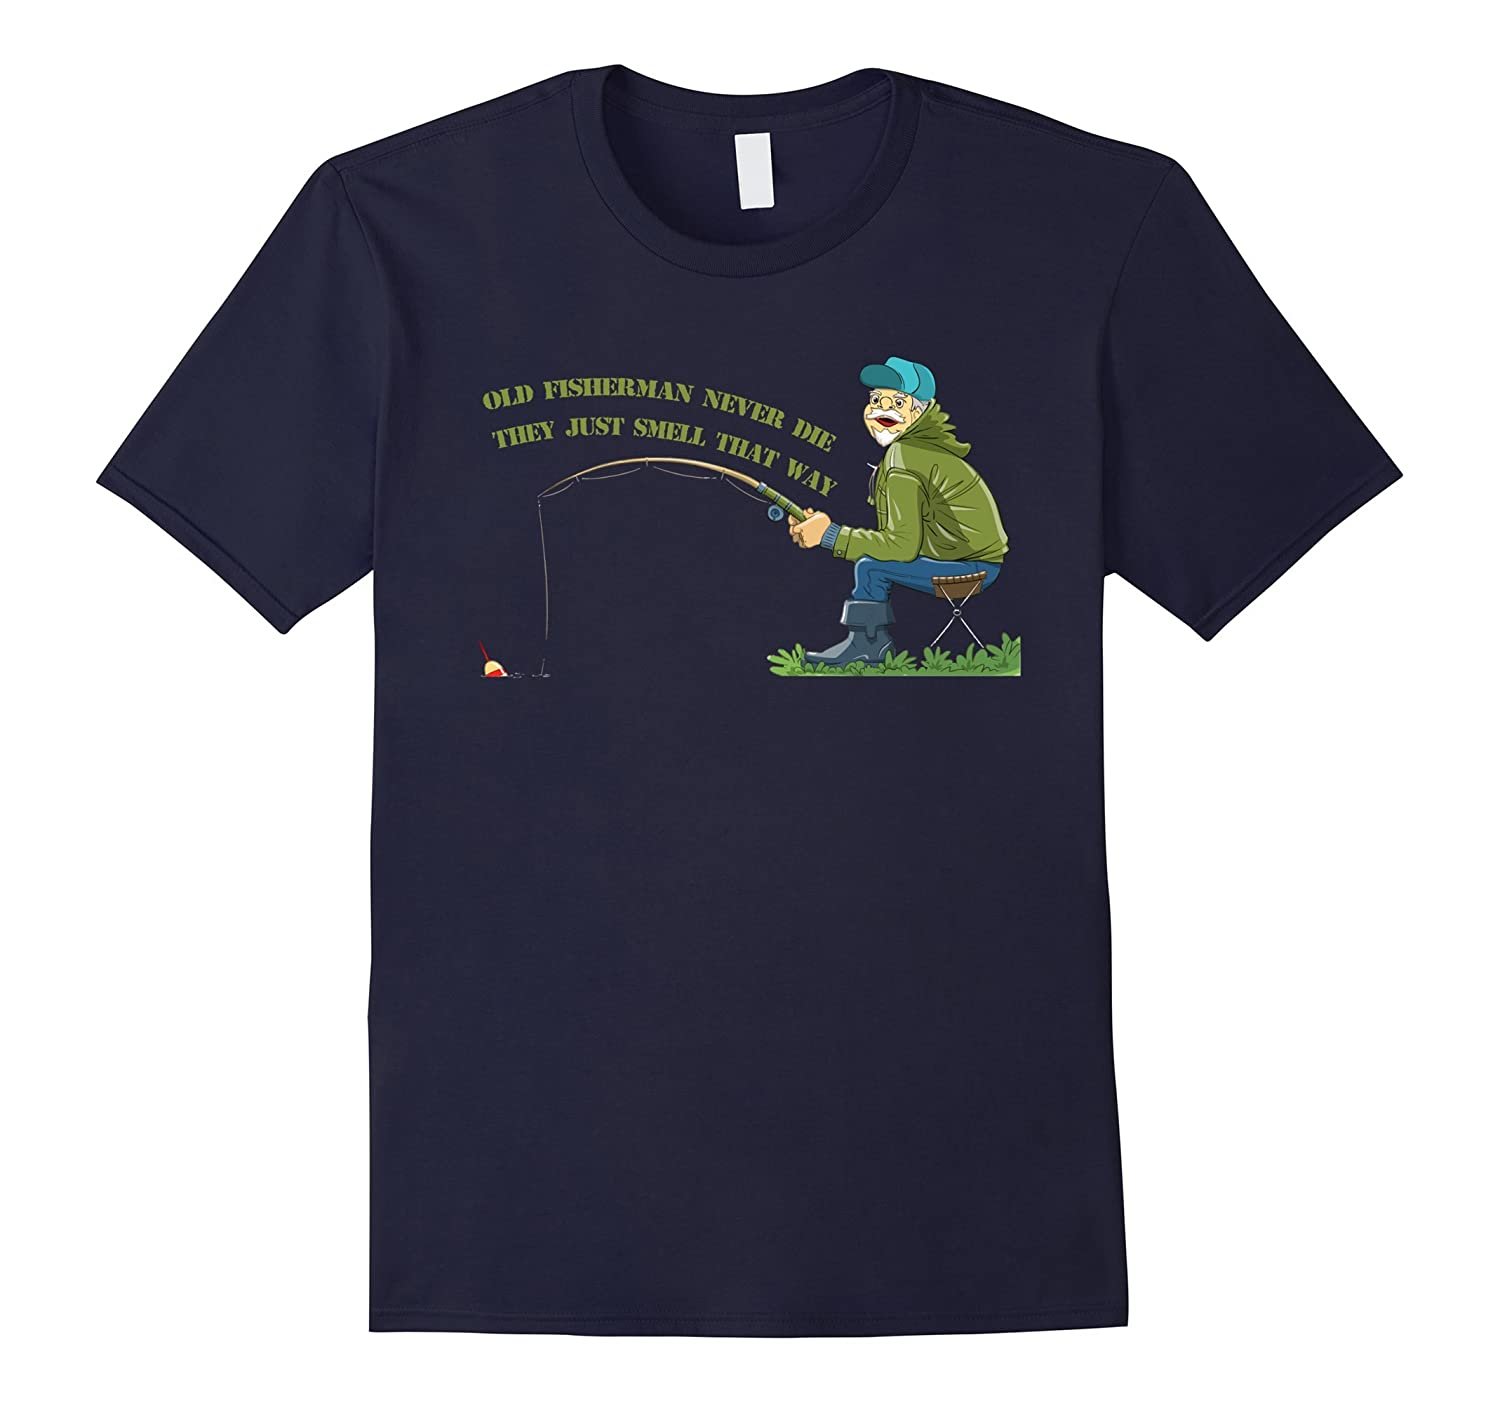 Funny Shirt Old Fisherman Never Die They Just Smell That Way-CL